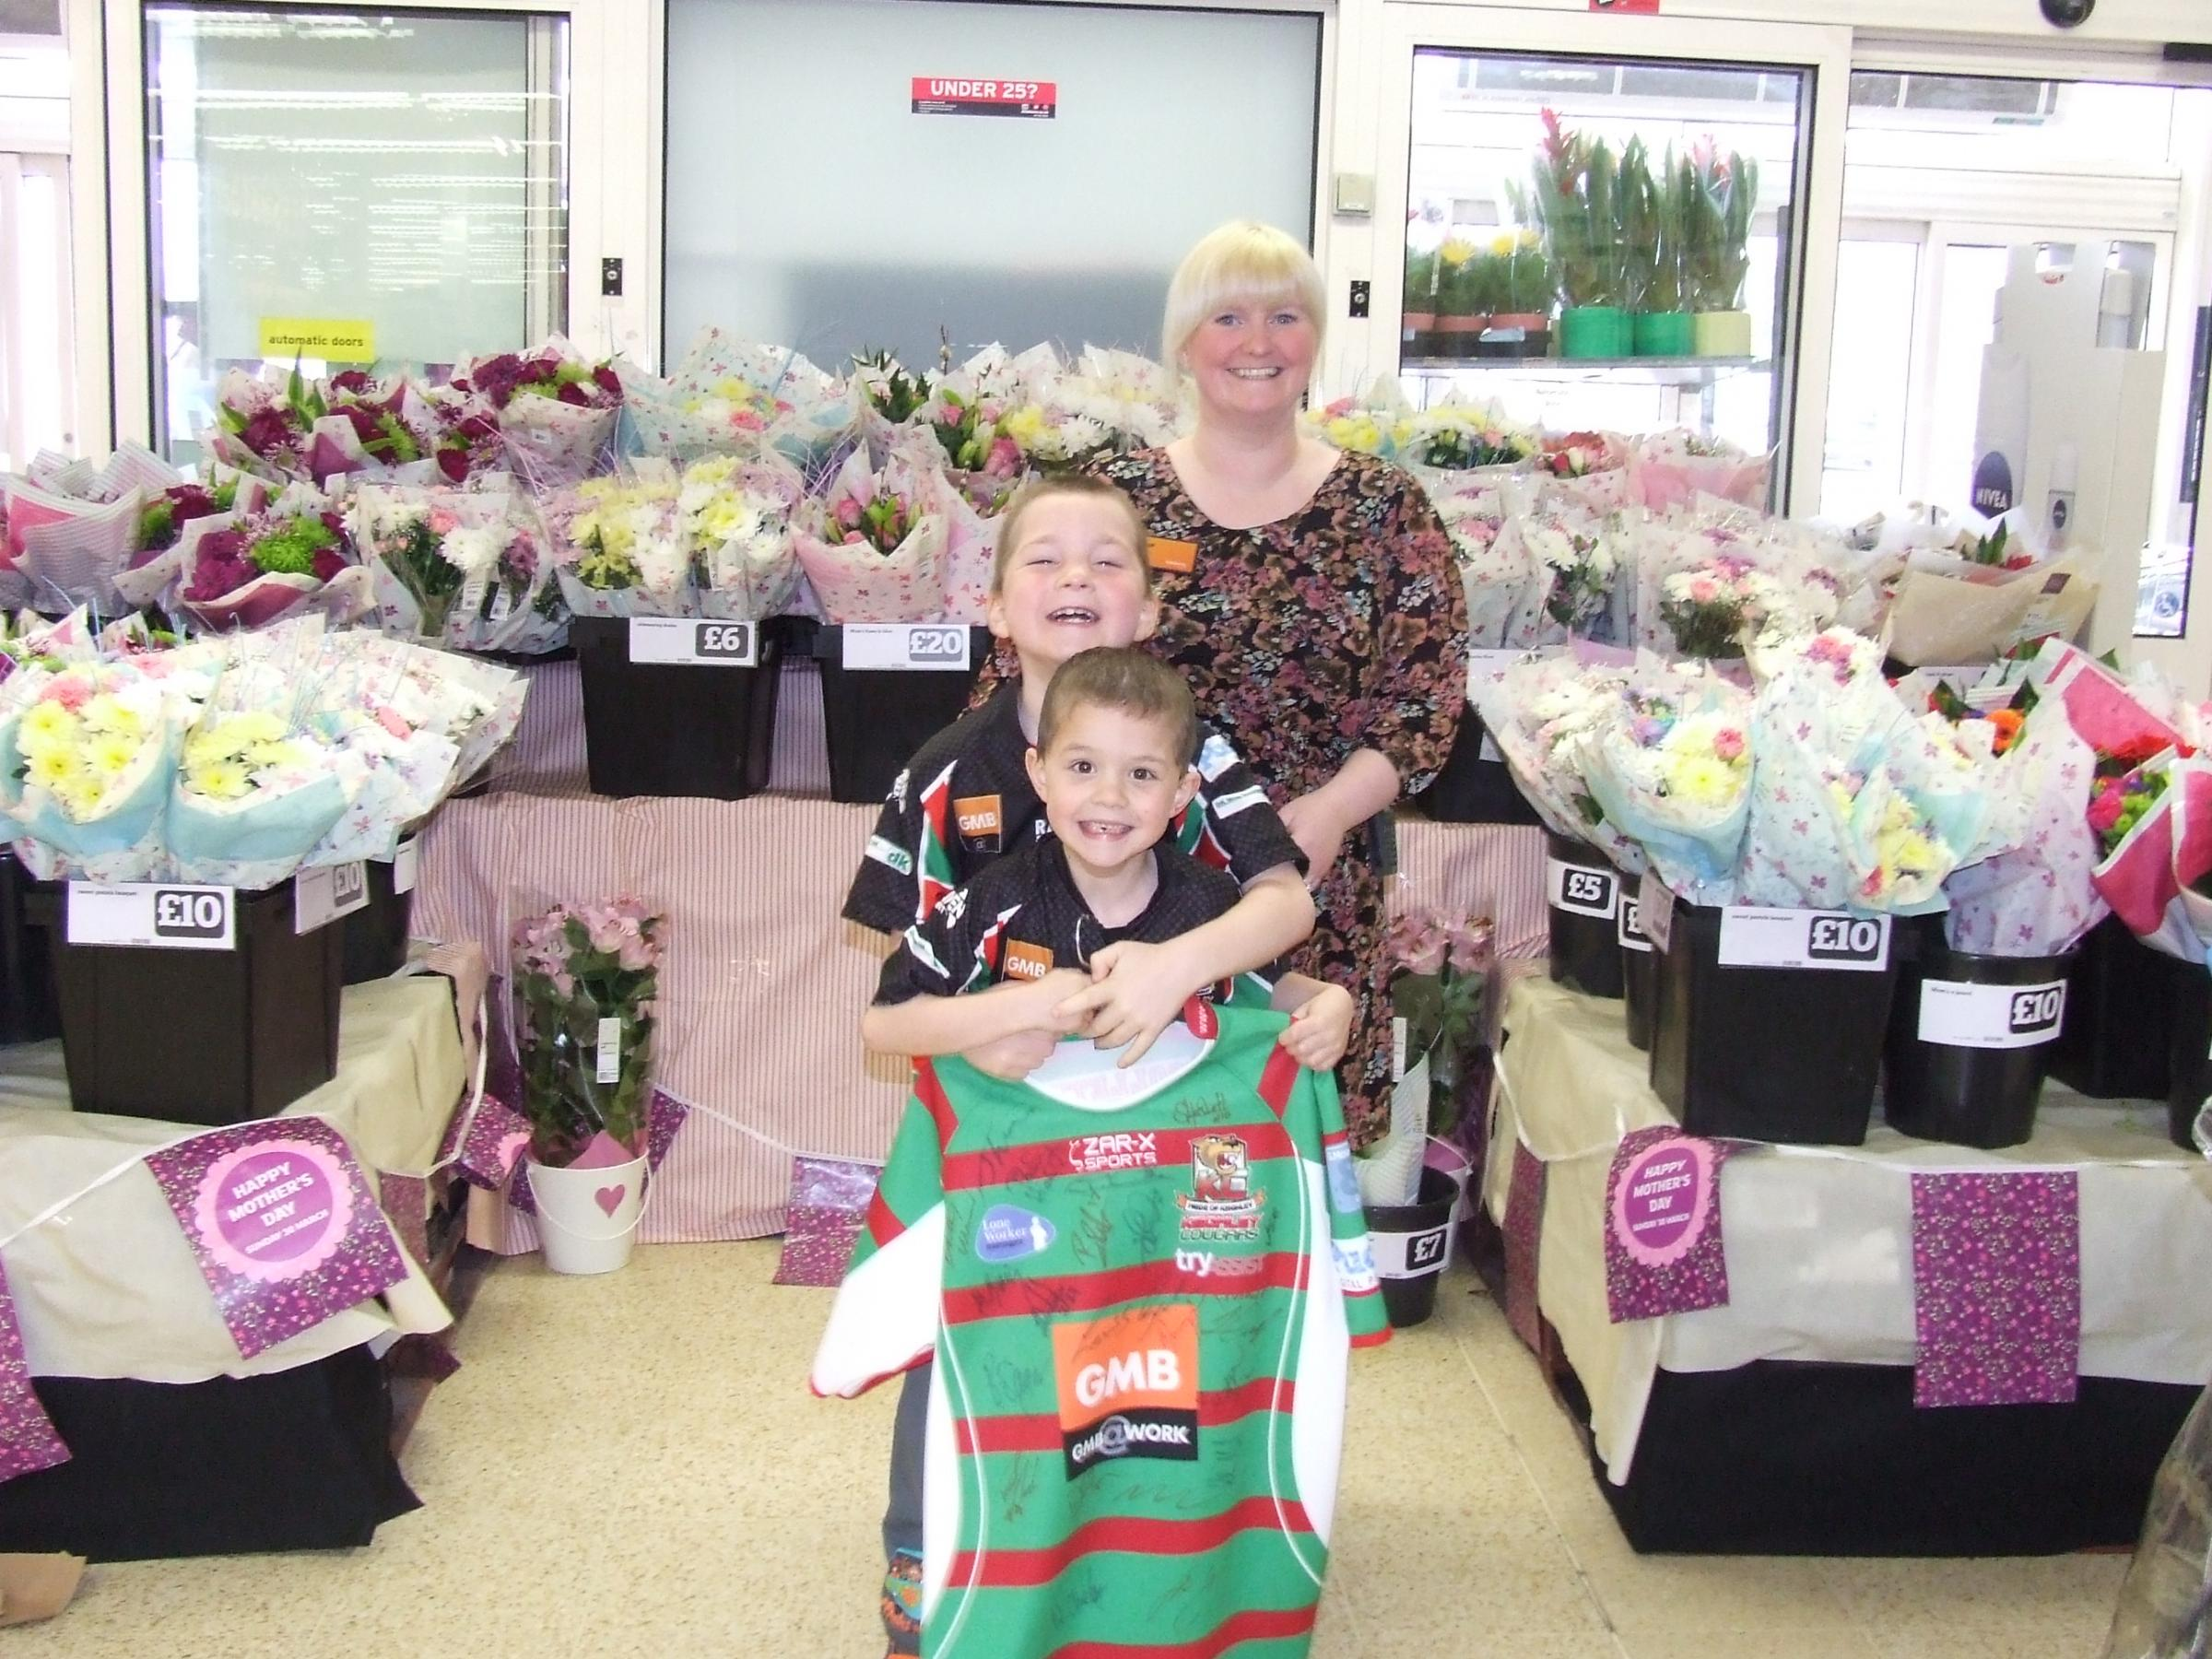 Faye Jessop, deputy manager of the Keighley Sainsbury's store, presenting a Keighley Cougars shirt to raffle winners Bradley and Oliver Foulds